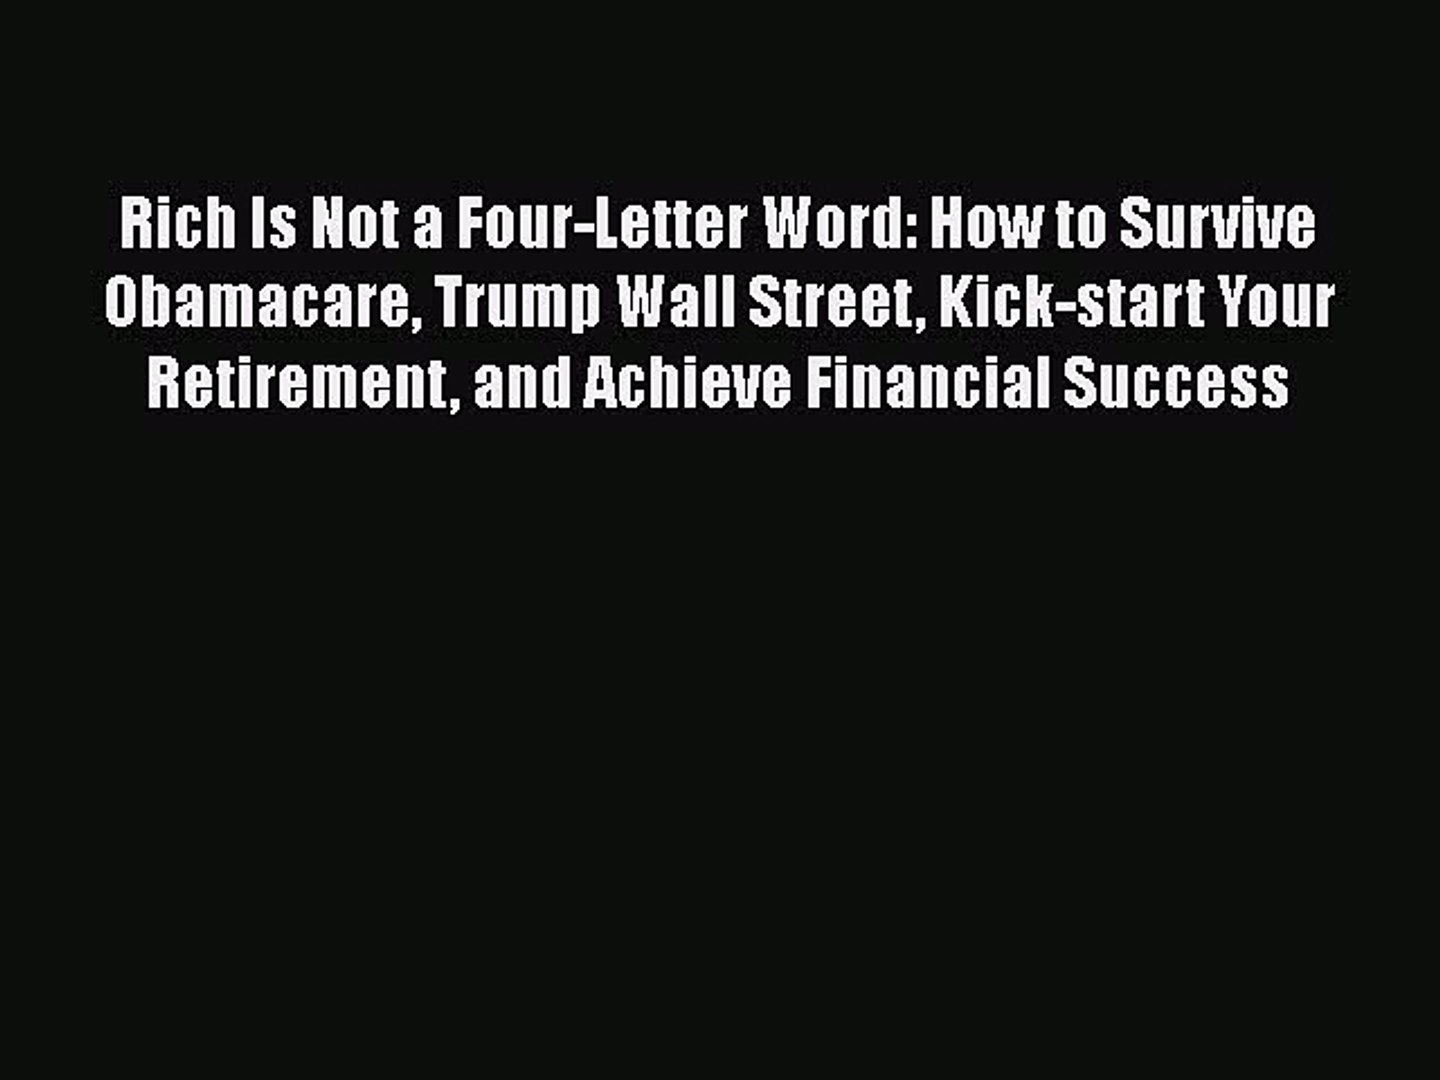 Read Rich Is Not a Four-Letter Word: How to Survive Obamacare Trump Wall Street Kick-start